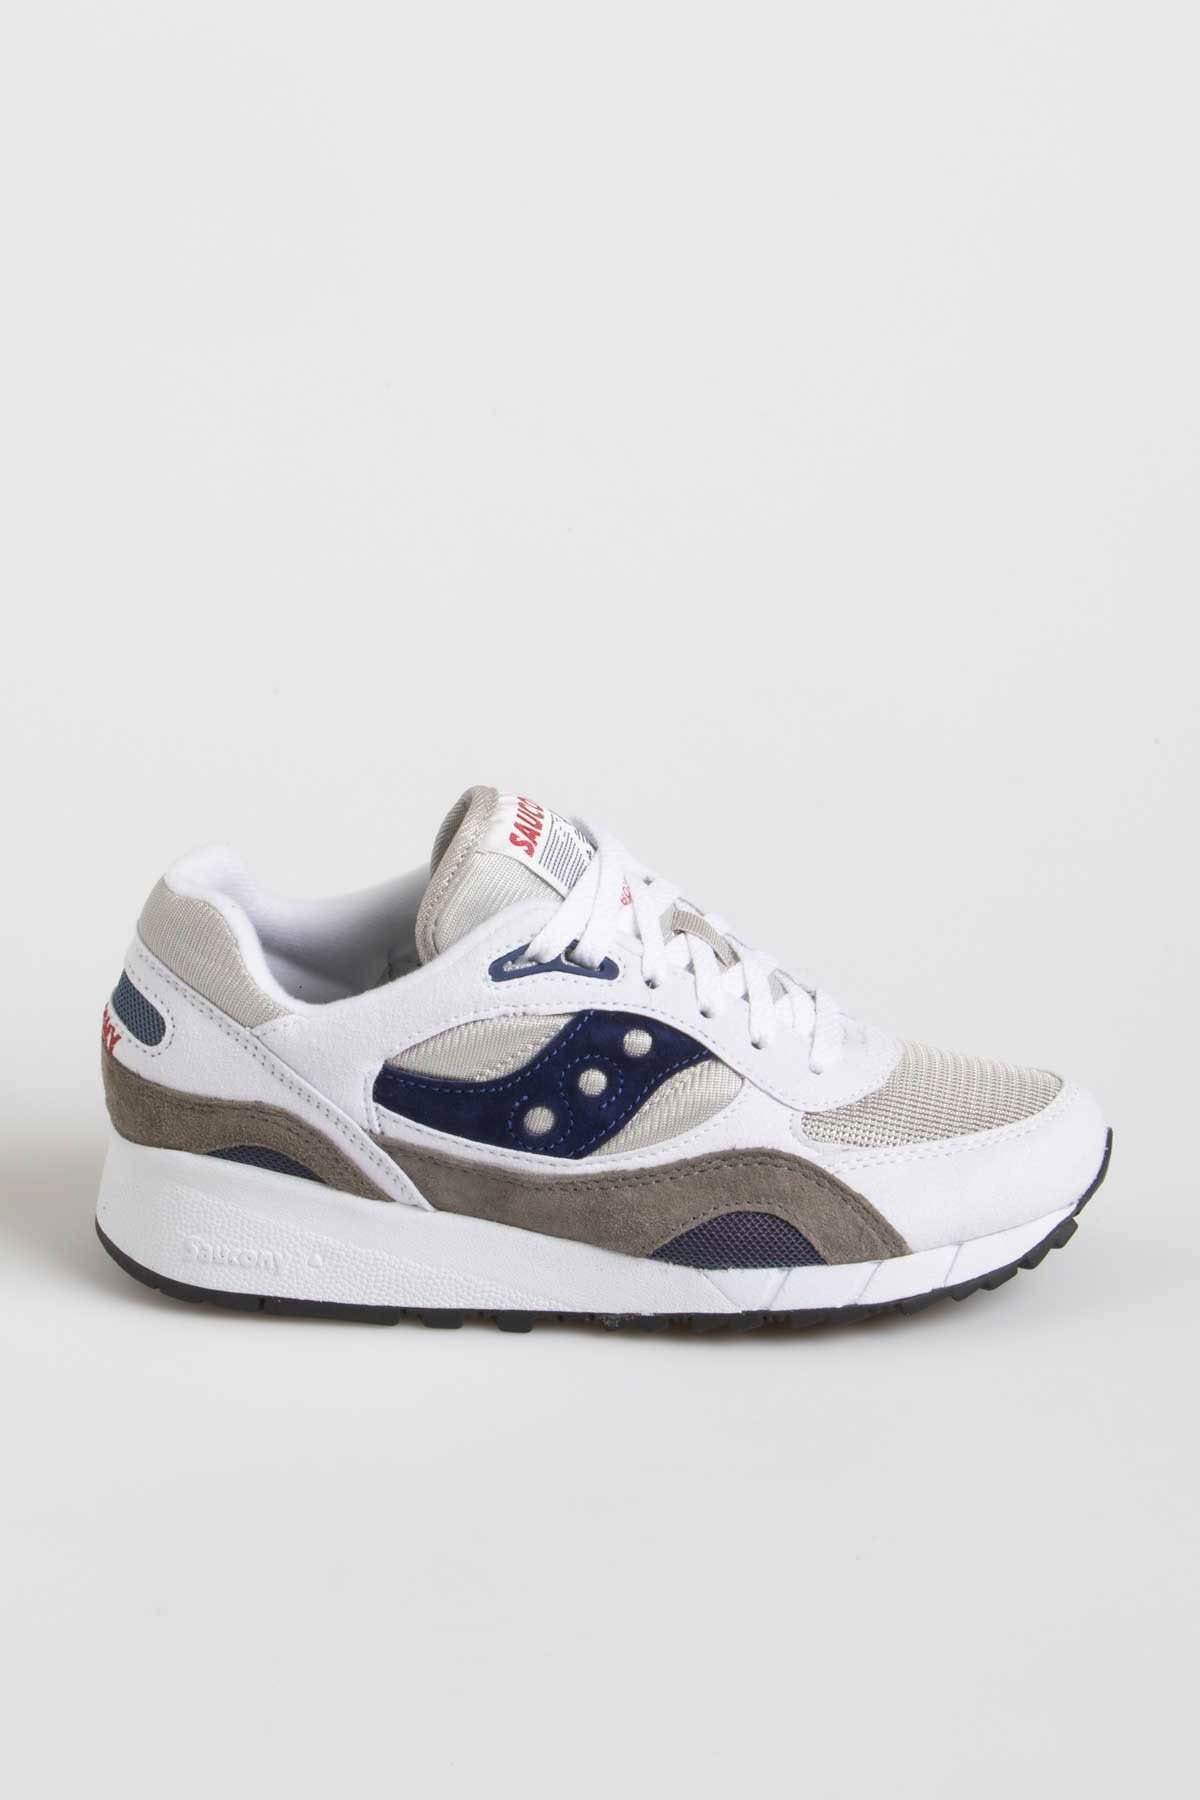 size 40 de426 8e28a SAUCONY SHADOW 6000 White / Grey / Blue Navy S/S19